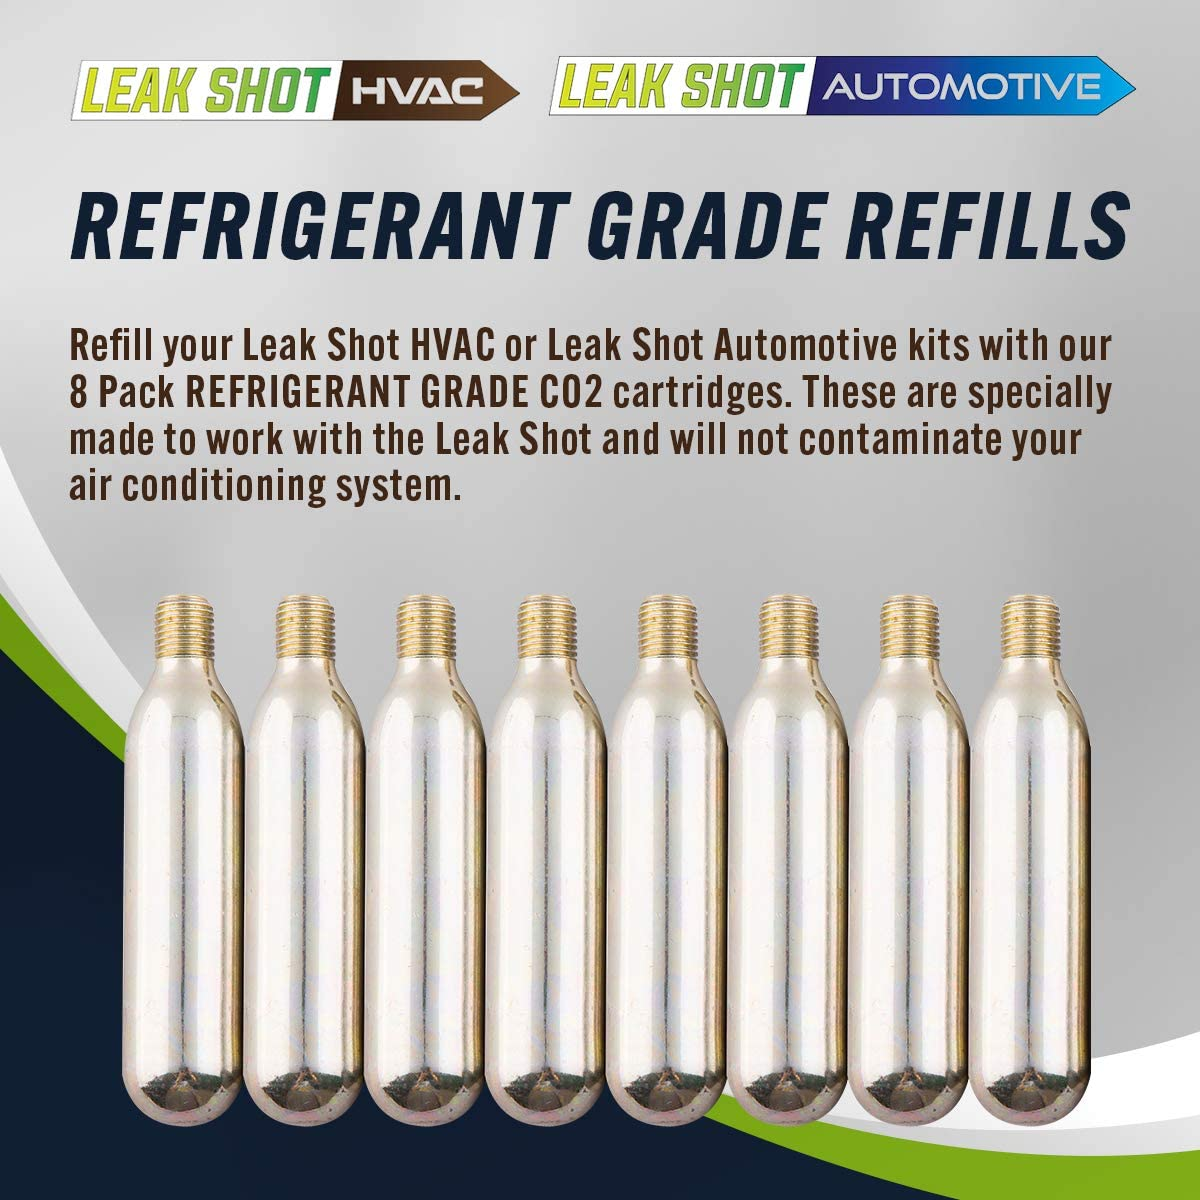 8 Pack - Refill for The Leak Shot HVAC Kit - for A//C /& Refrigeration Systems Up to 5 Tons Leak Saver USA Made Leak Shot Refrigerant Grade CO2 Refill Cartridges Sold Separately